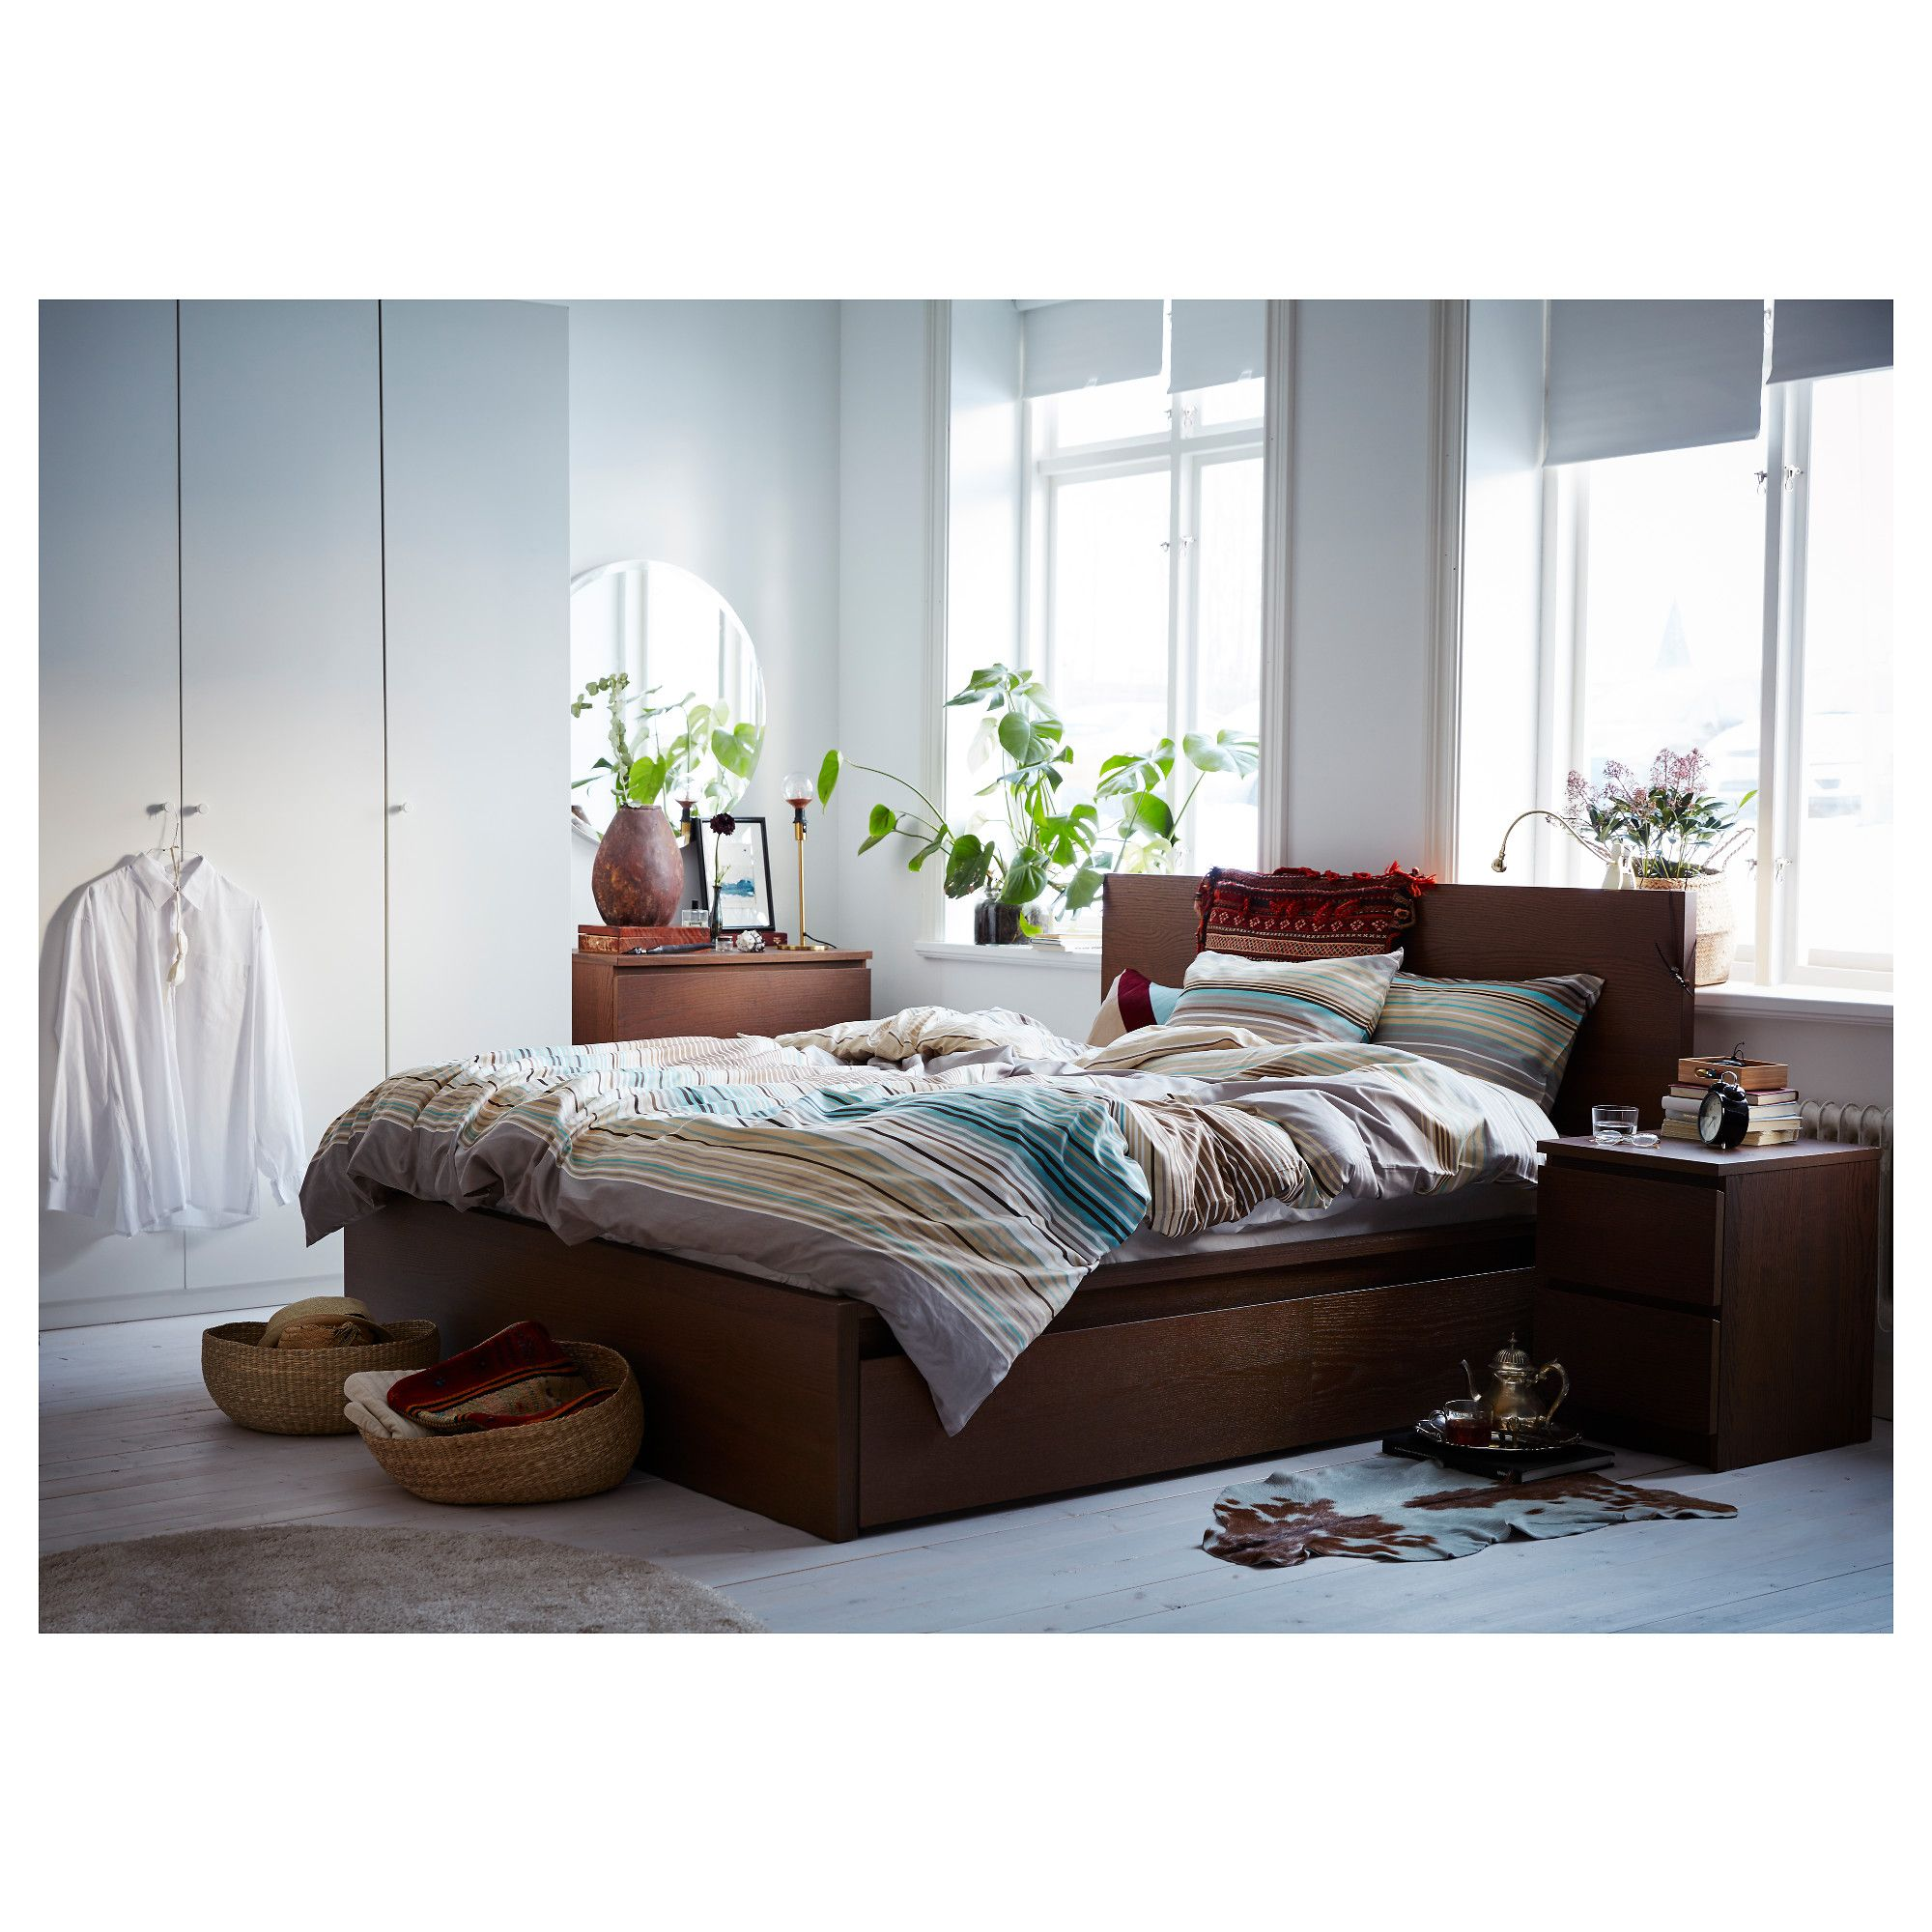 Malm High Bed Frame 4 Storage Boxes Brown Stained Ash Veneer